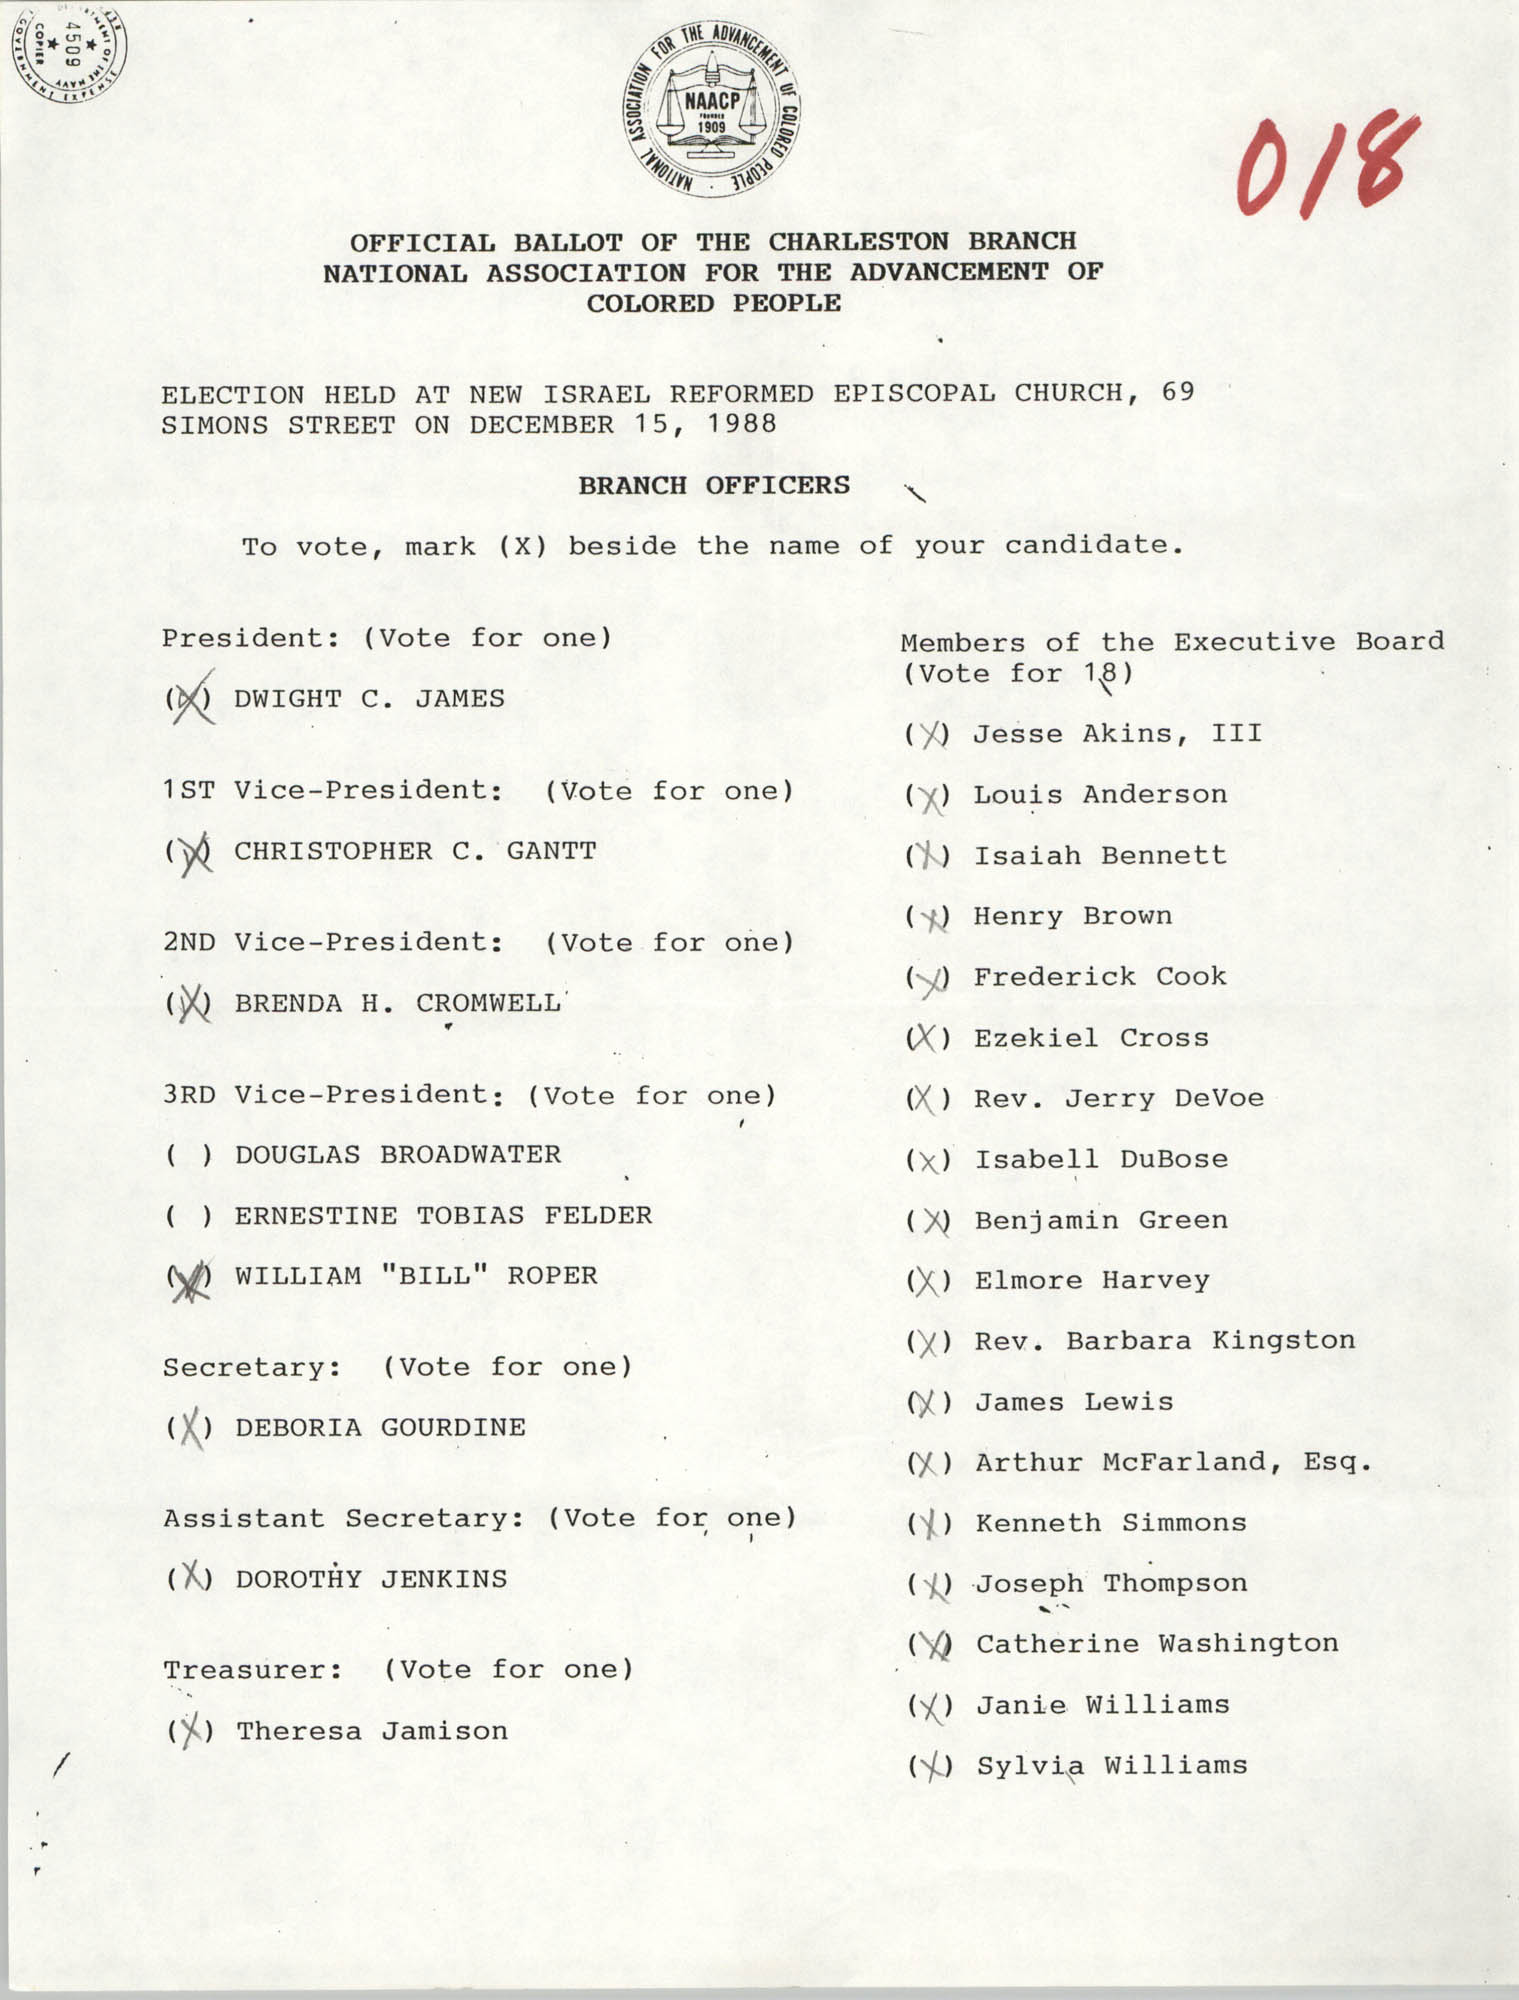 Official Ballot of the Charleston Branch of the NAACP, 018